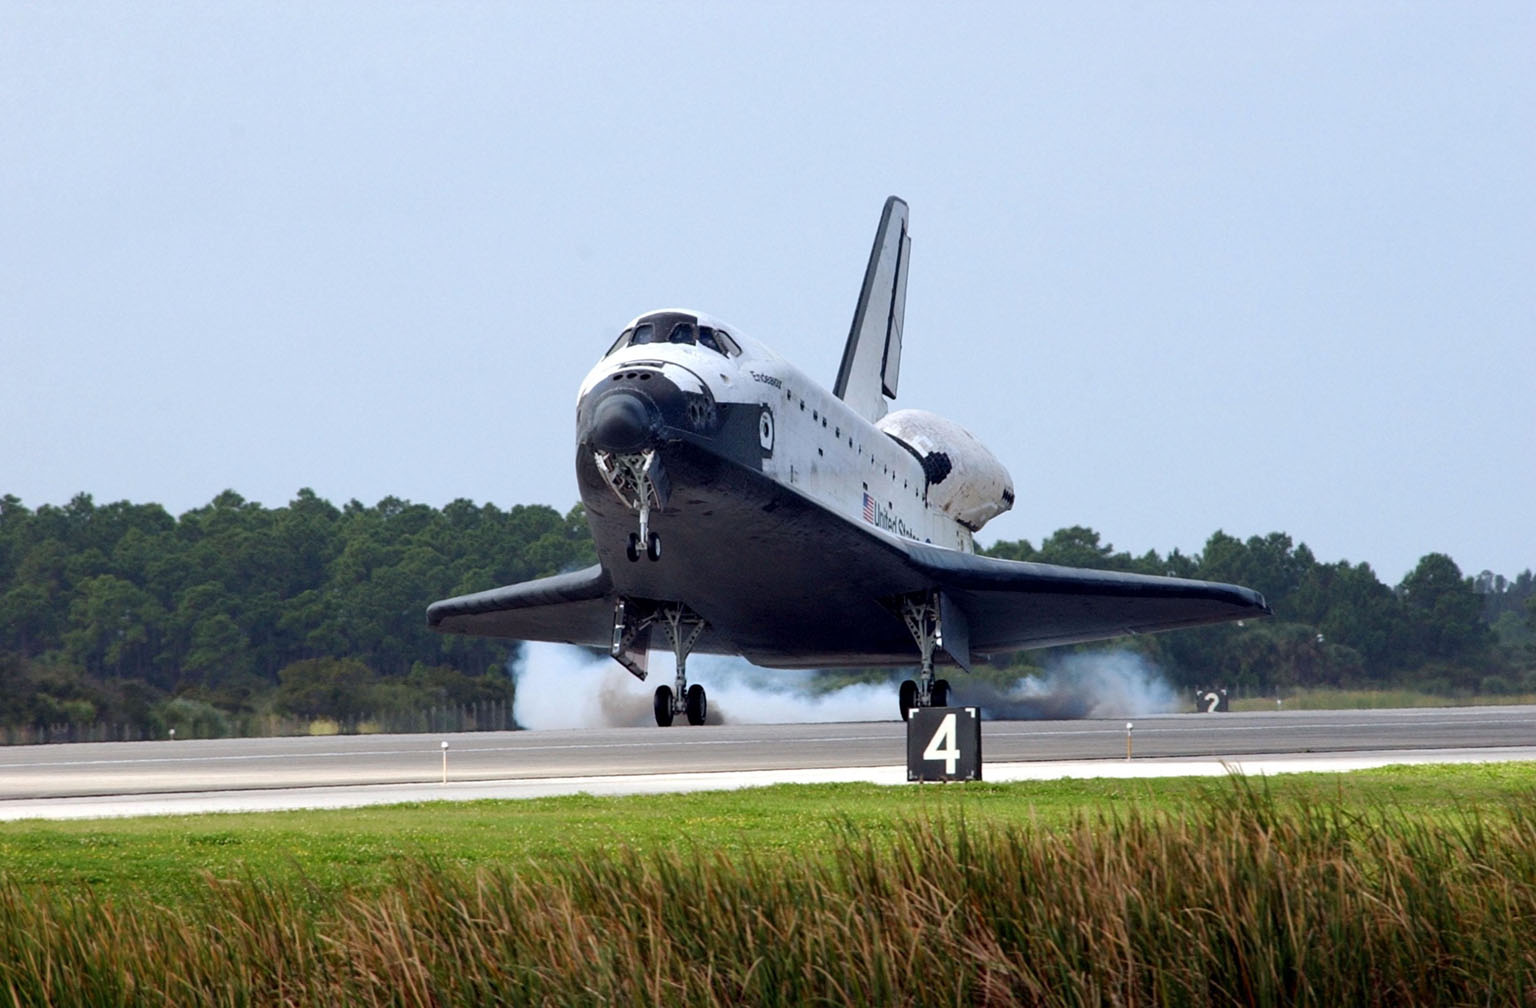 KENNEDY SPACE CENTER, FLA. - Orbiter Endeavour kicks up dust as it touches down on Runway 15 at the KSC Shuttle Landing Facility, completing mission STS-108. After a mission-elapsed time of 11 days, 19 hours and 35 minutes, the landing is the 57th at KSC in the history of the program. Main gear touchdown occurred at 12:55:10 p.m. EST (17:55:10 GMT), nose gear touchdown at 12:55:23 p.m. (17:55:23 GMT) , wheel stop at 12:56:13 p.m. (17:56:13 GMT). STS-108 was the 12th mission to the International Space Station. This mission was the 107th flight in the Shuttle program and the 17th flight for the orbiter. Endeavour carries both the mission crew and the Expedition 3 crew - Commander Frank Culbertson and cosmonauts Vladimir Dezhurov and Mikhail Tyurin - who are returning to Earth after 129 days in space on the Space Station